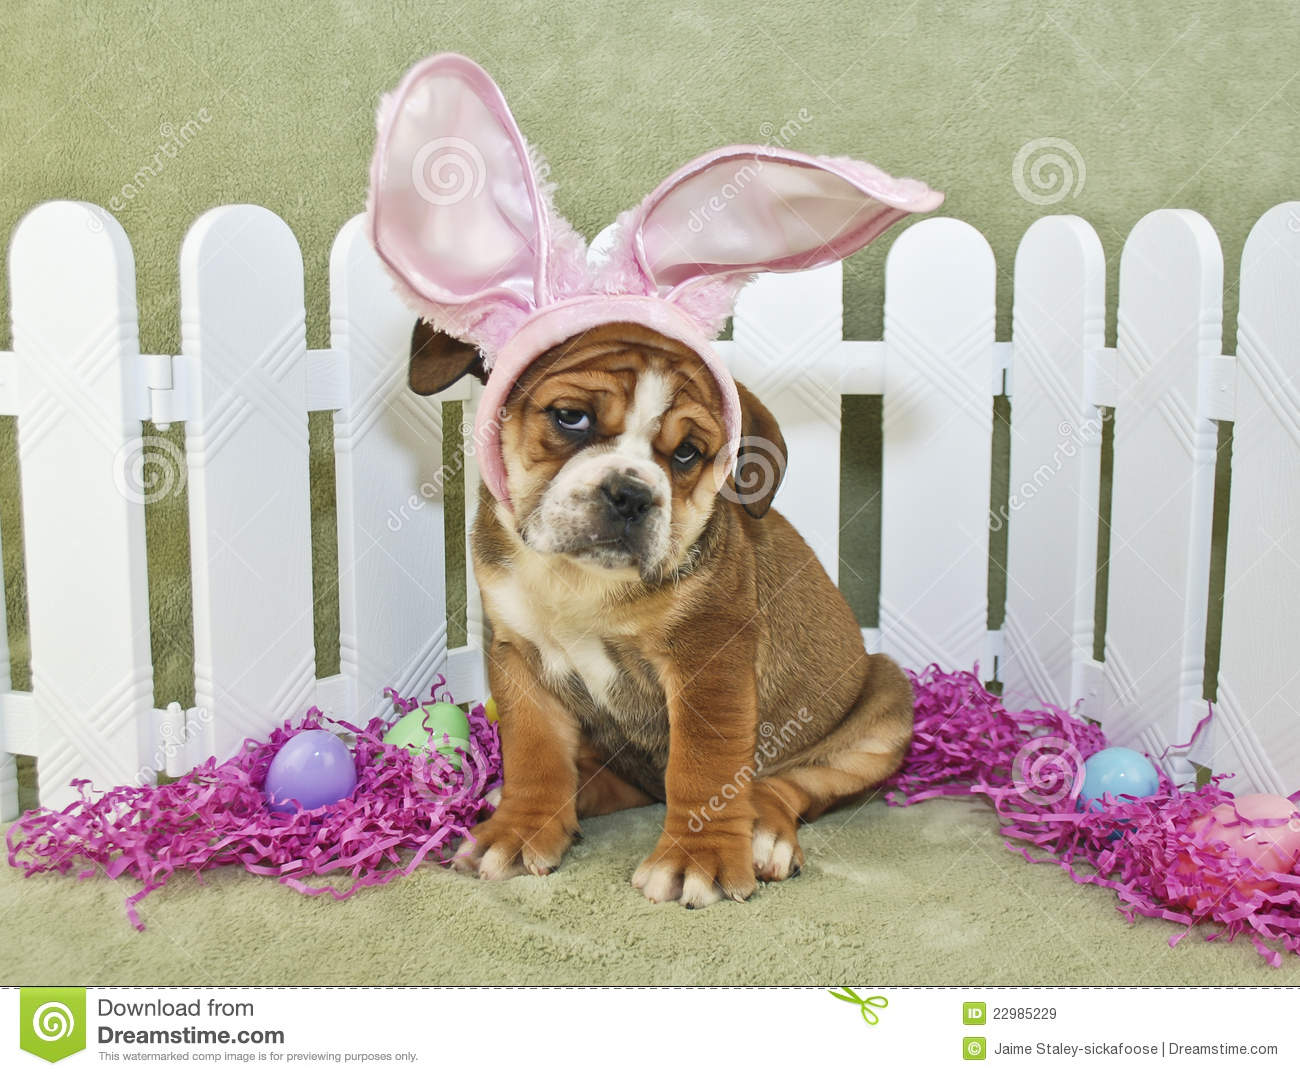 lustige ostern bulldogge stockbild bild von hunde. Black Bedroom Furniture Sets. Home Design Ideas